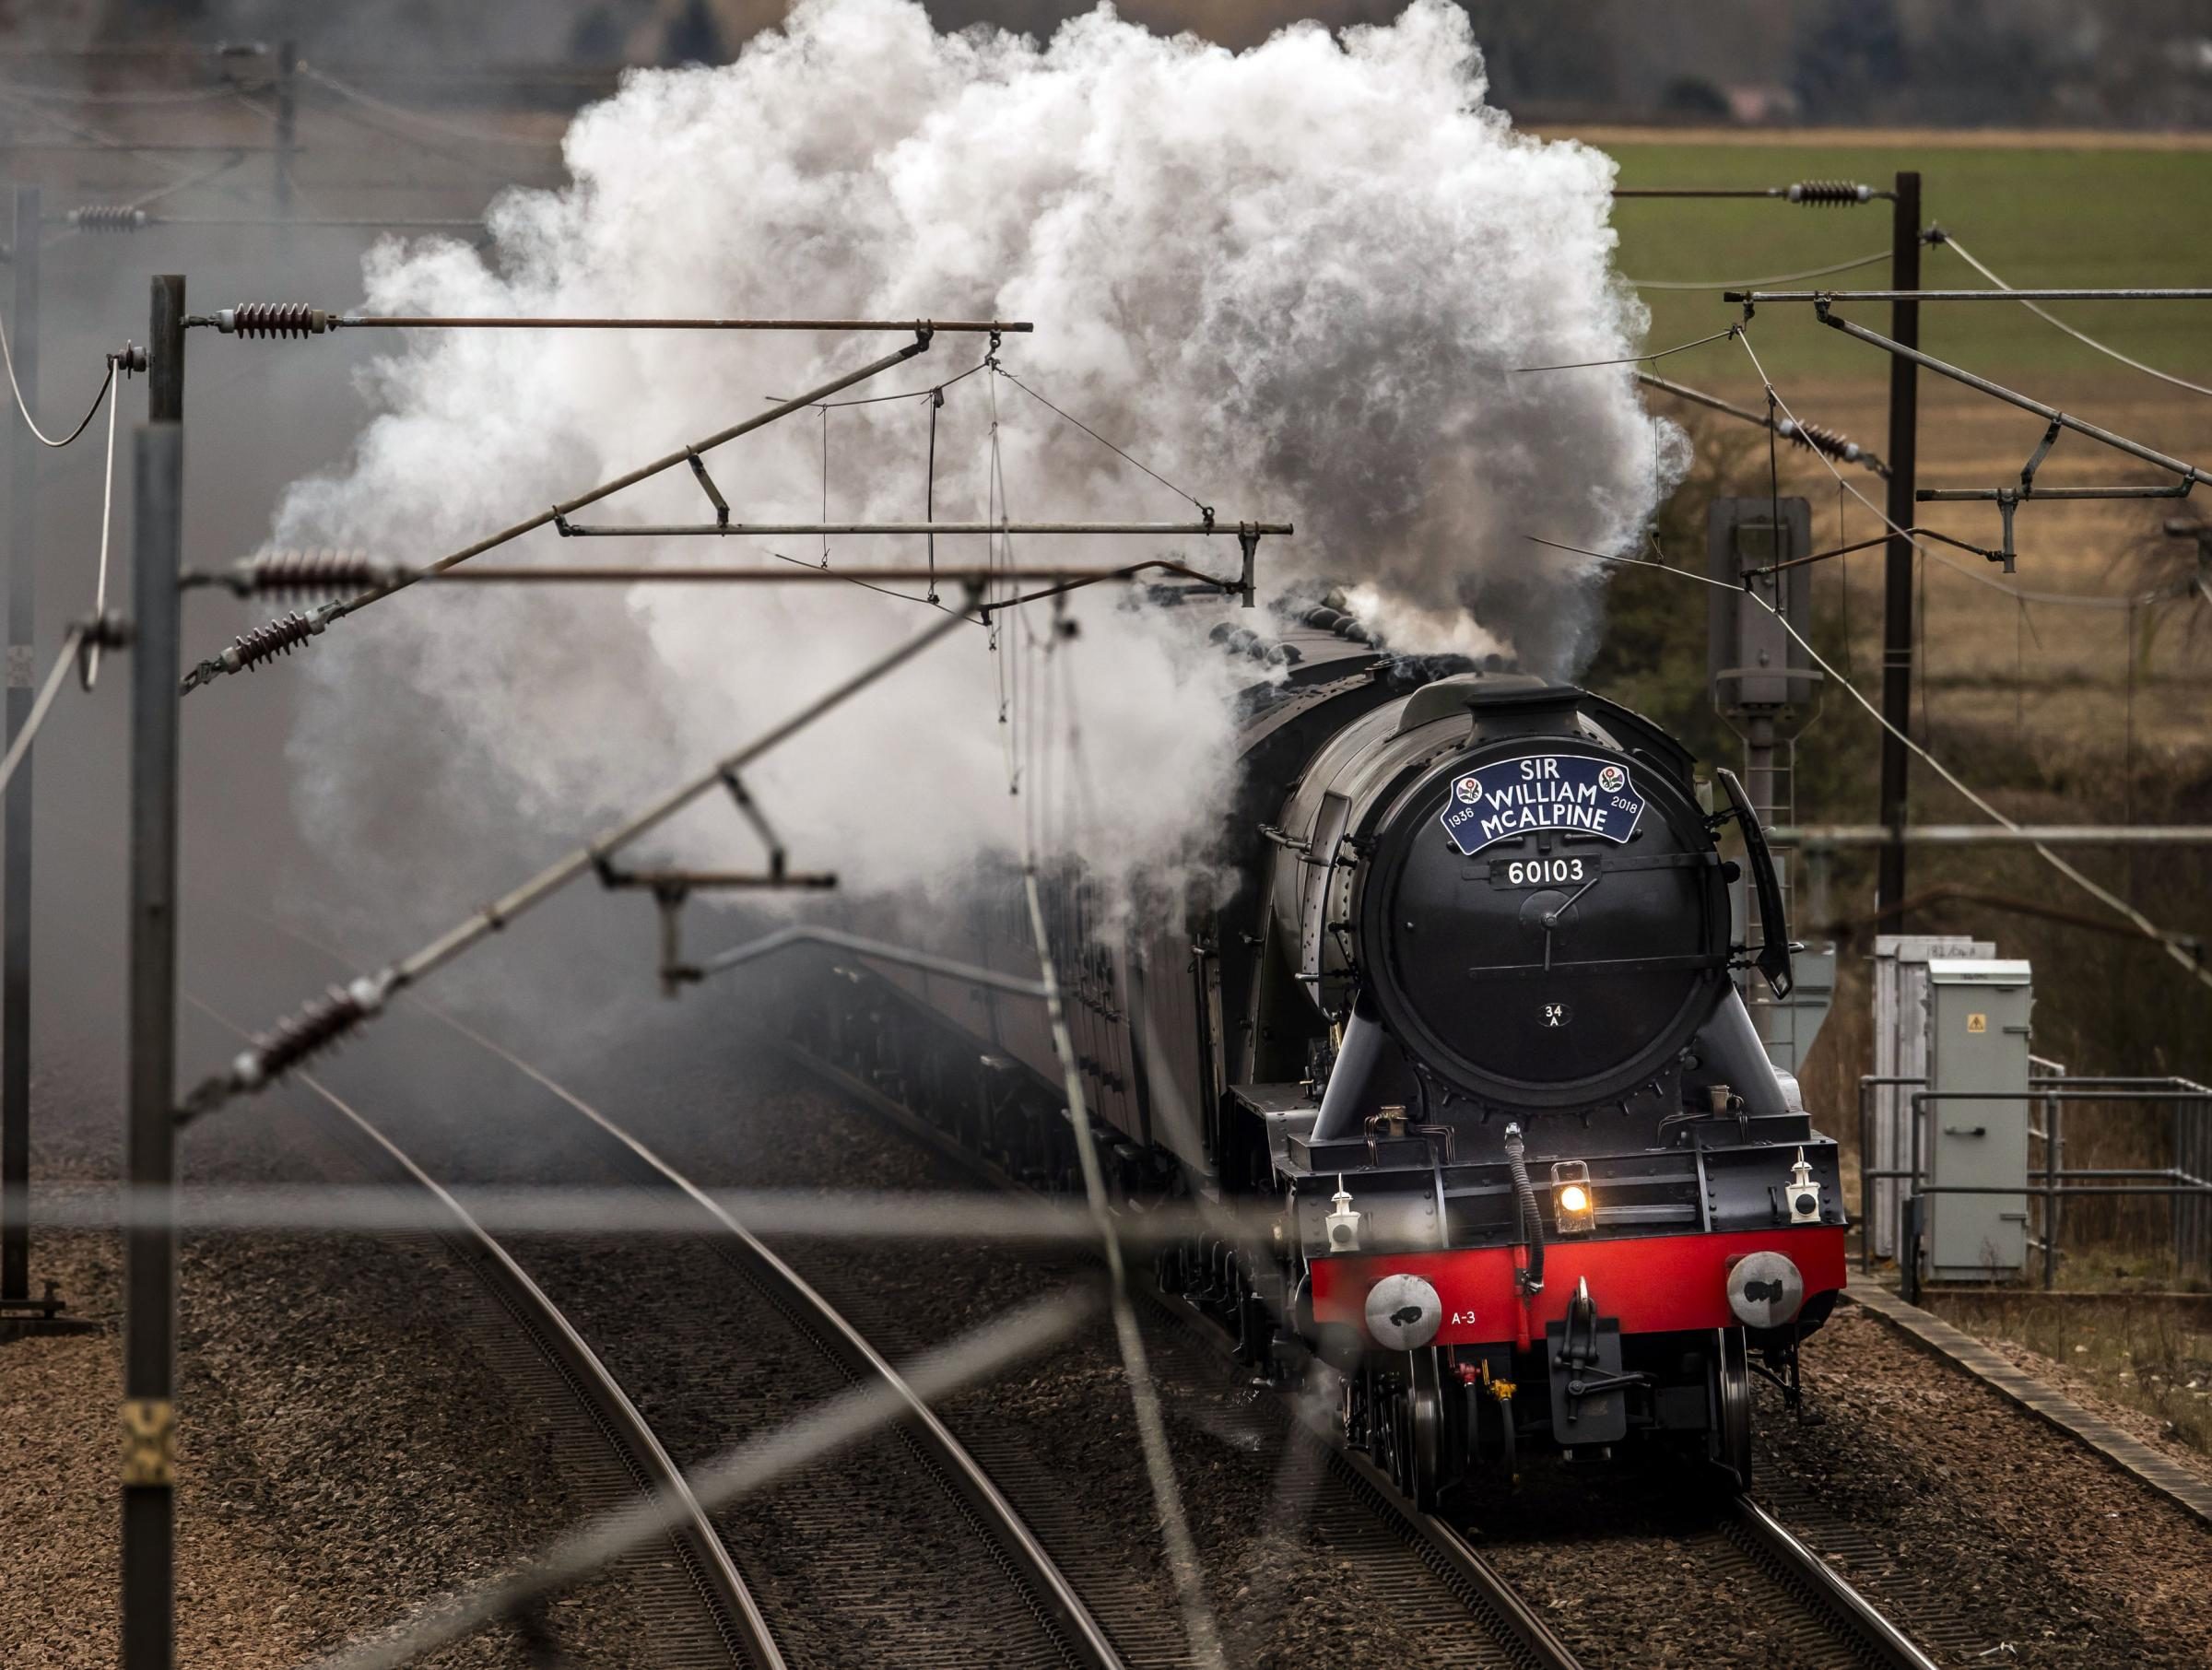 STEAMING AHEAD: The Flying Scotsman on its way to York on the East Coast Main Line